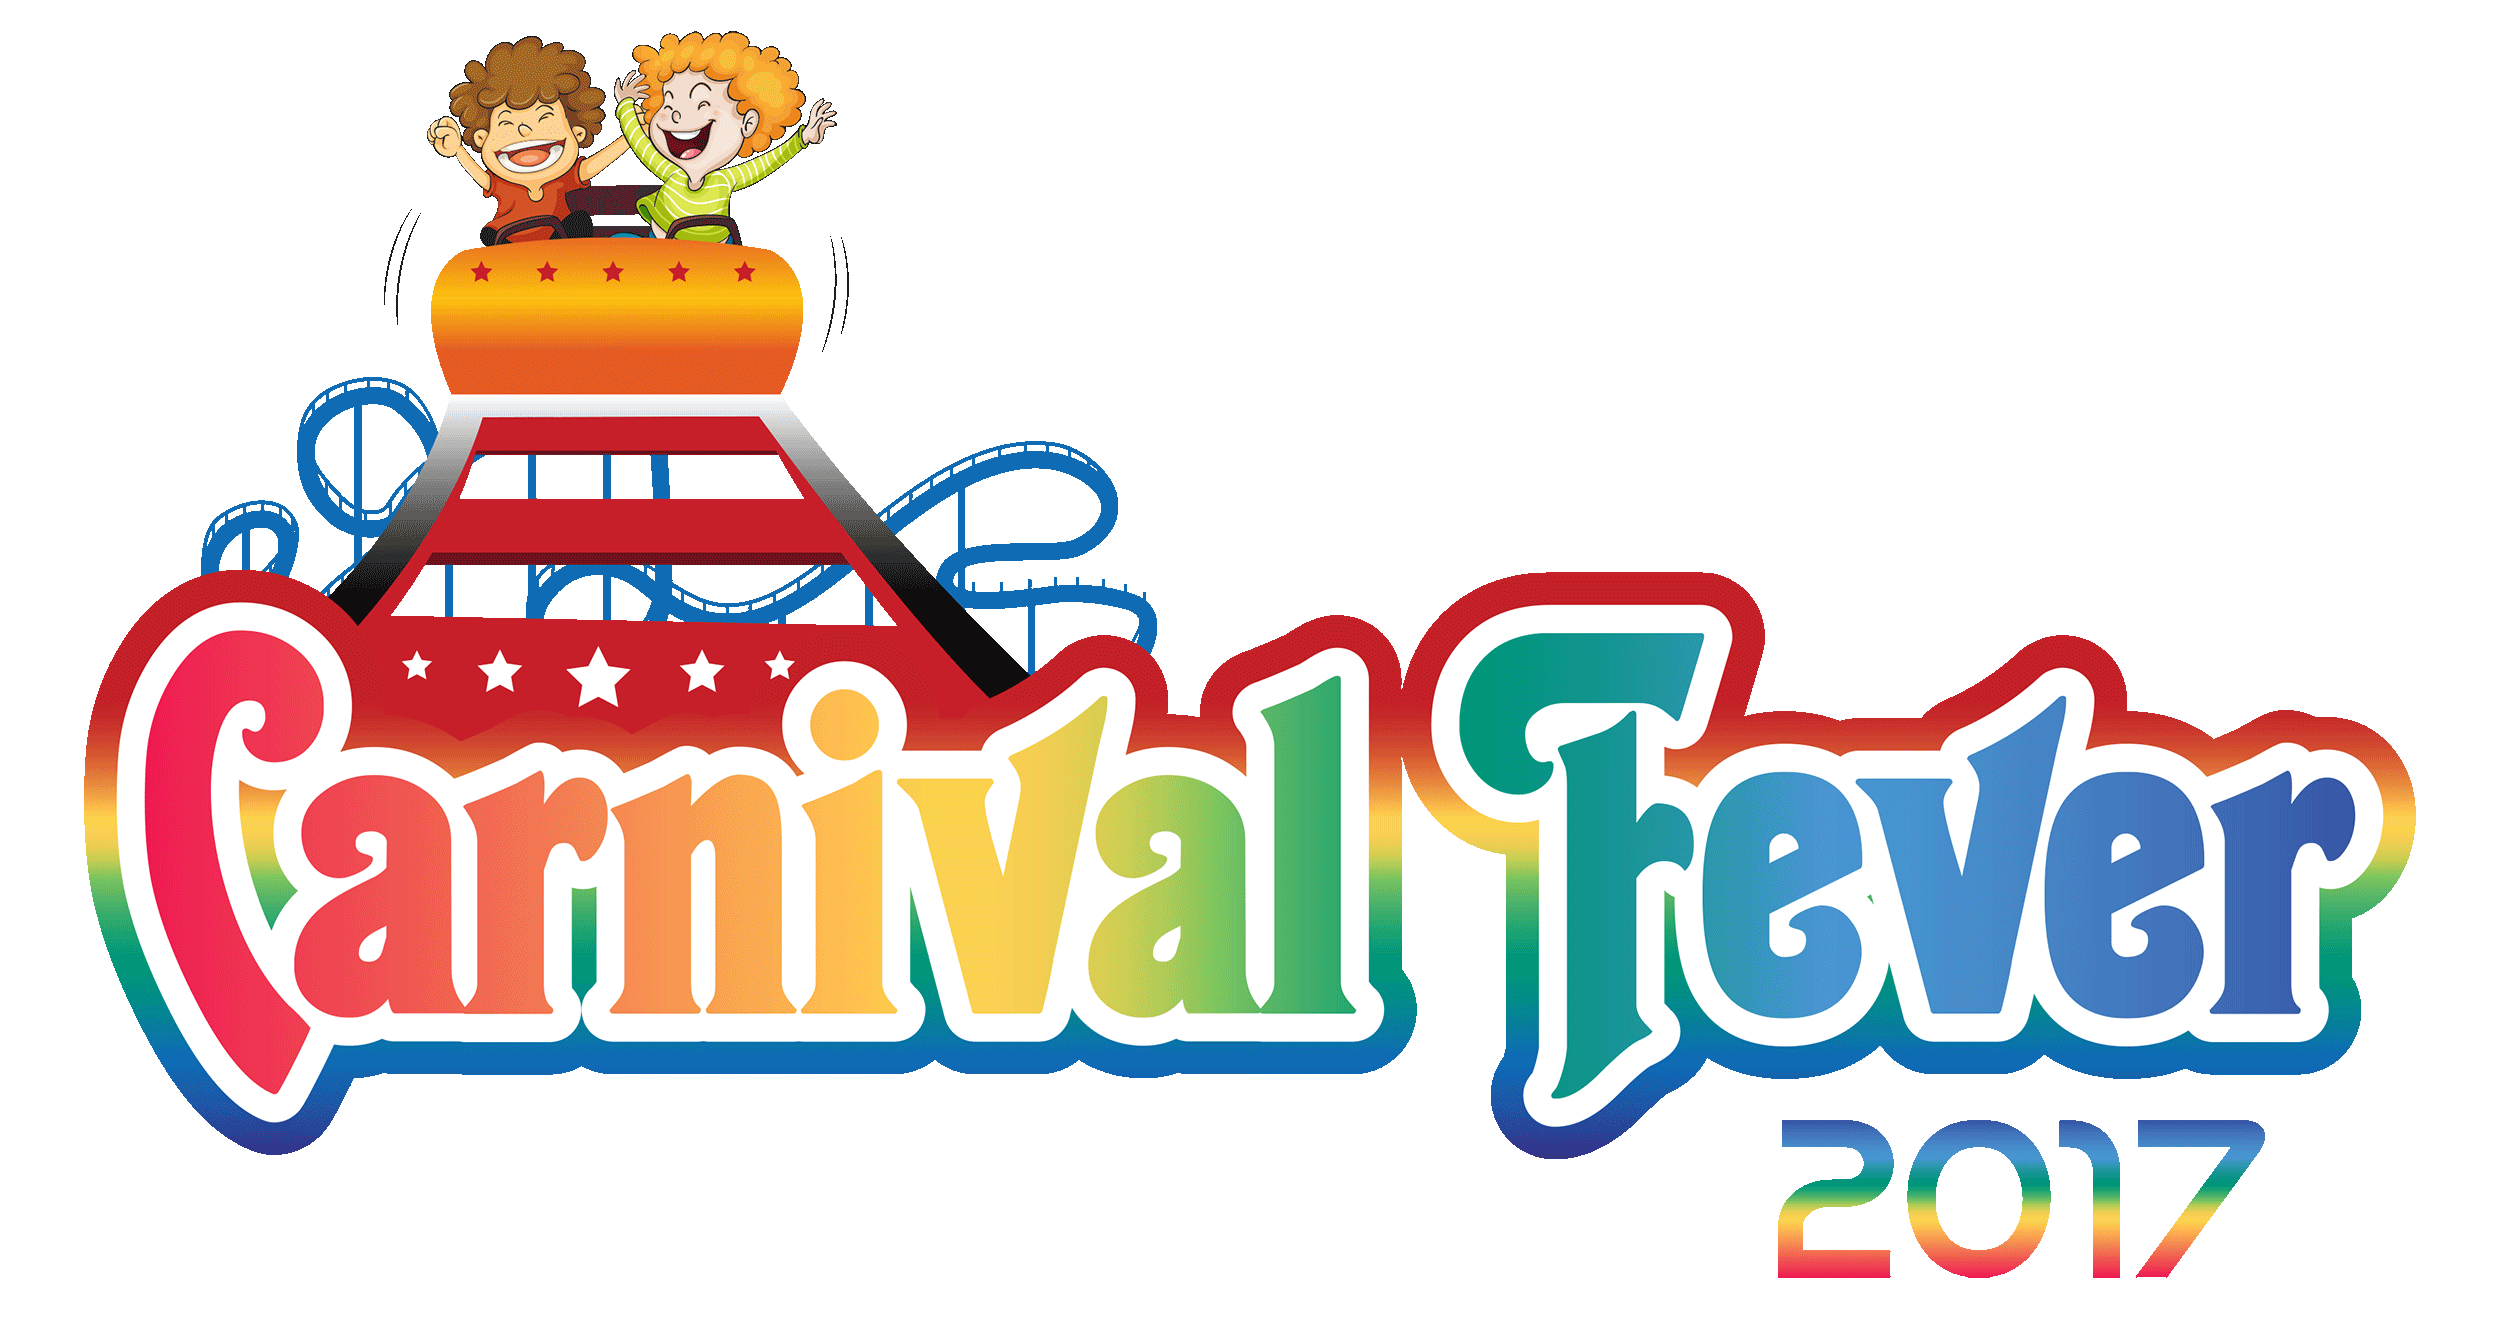 Tickets for Carnival Fever 2017 in Cannington from Ticketbooth